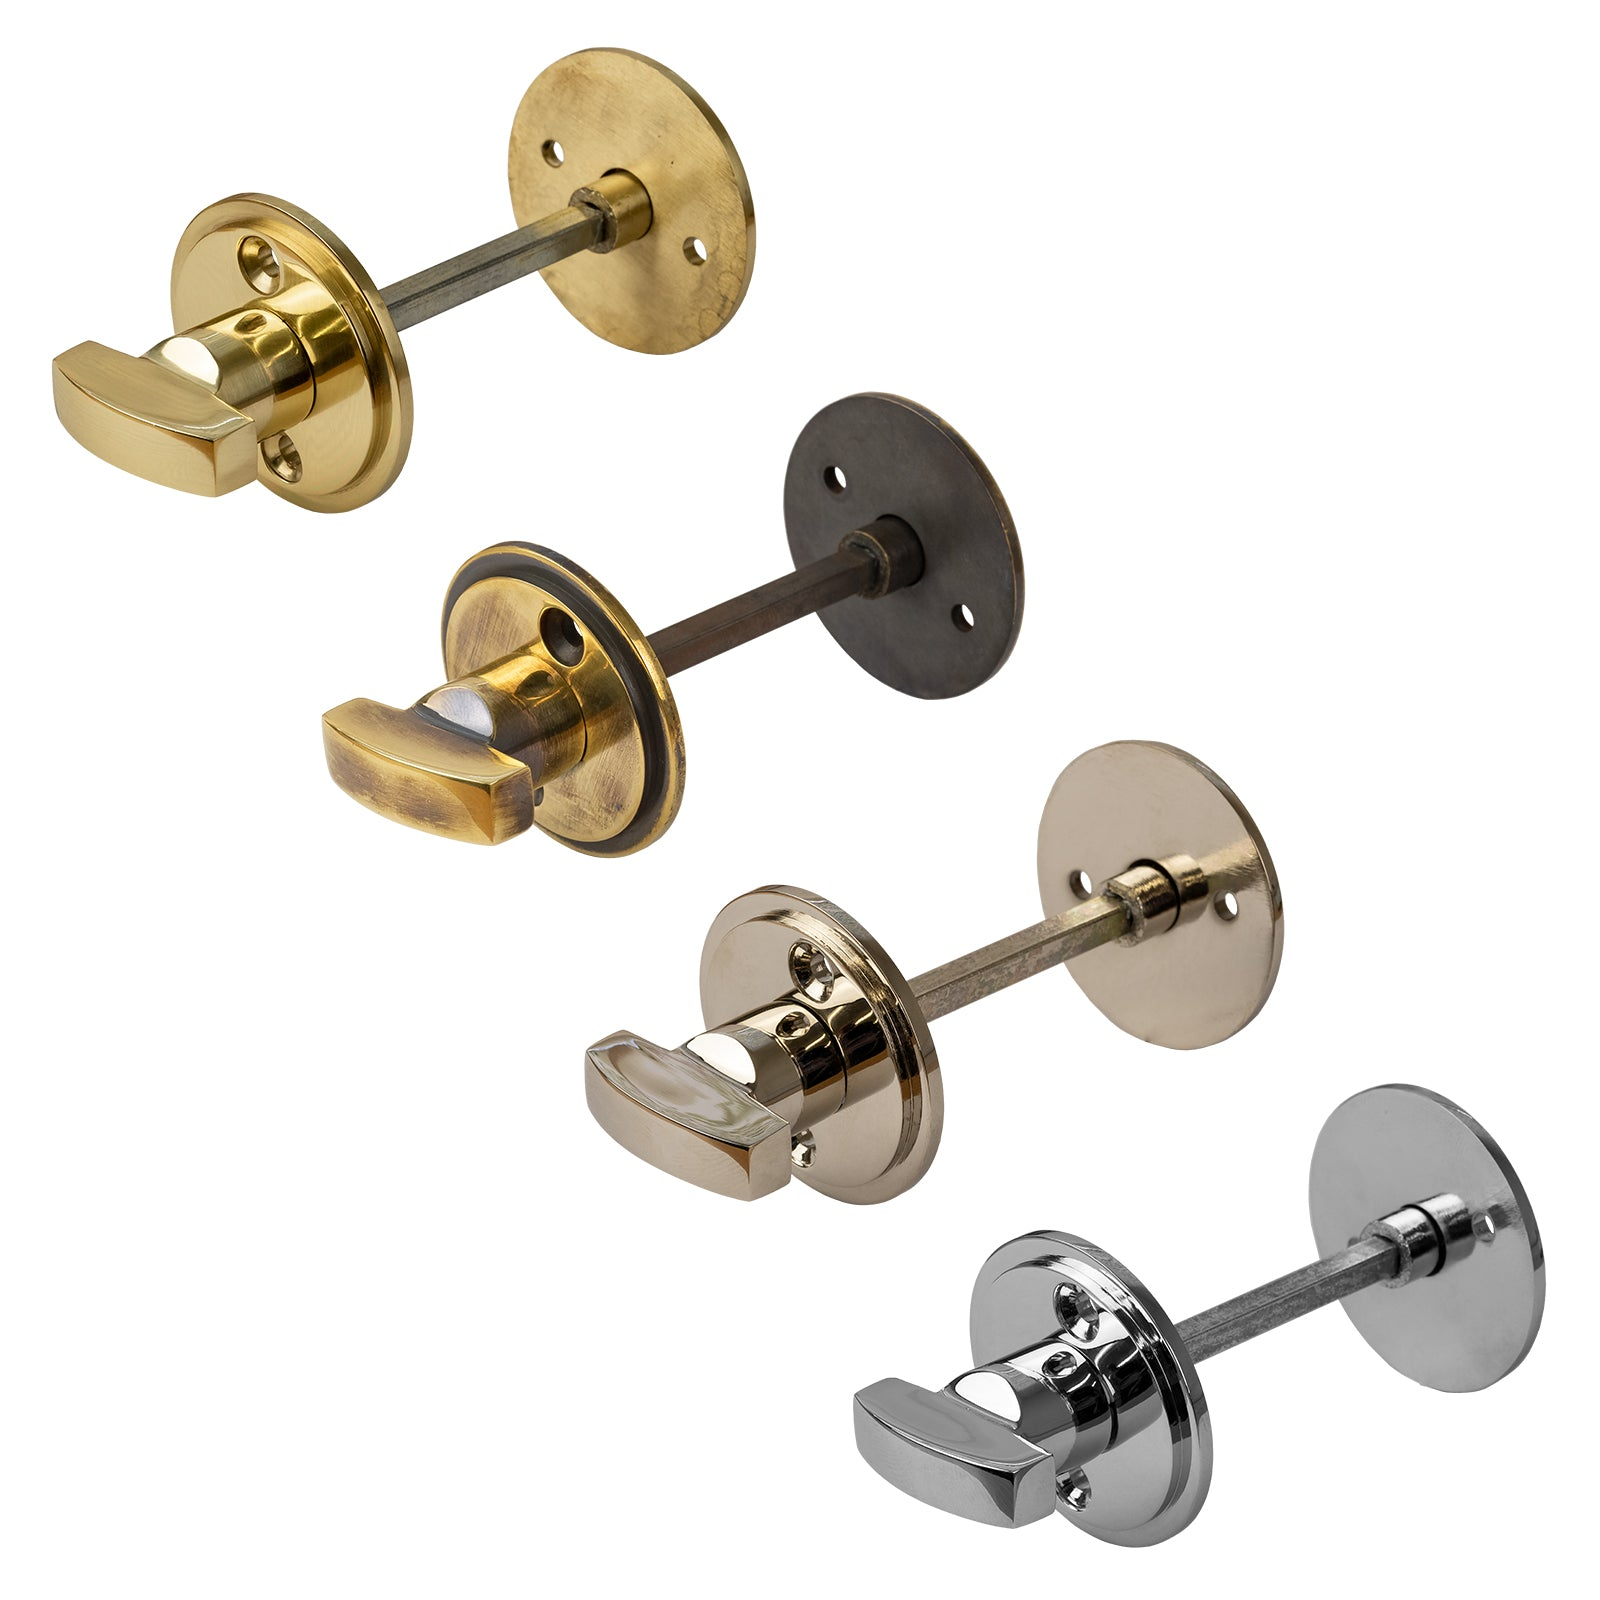 Heavy Duty Bathroom Turn & Release Brass, Antique, Nickel & Chrome